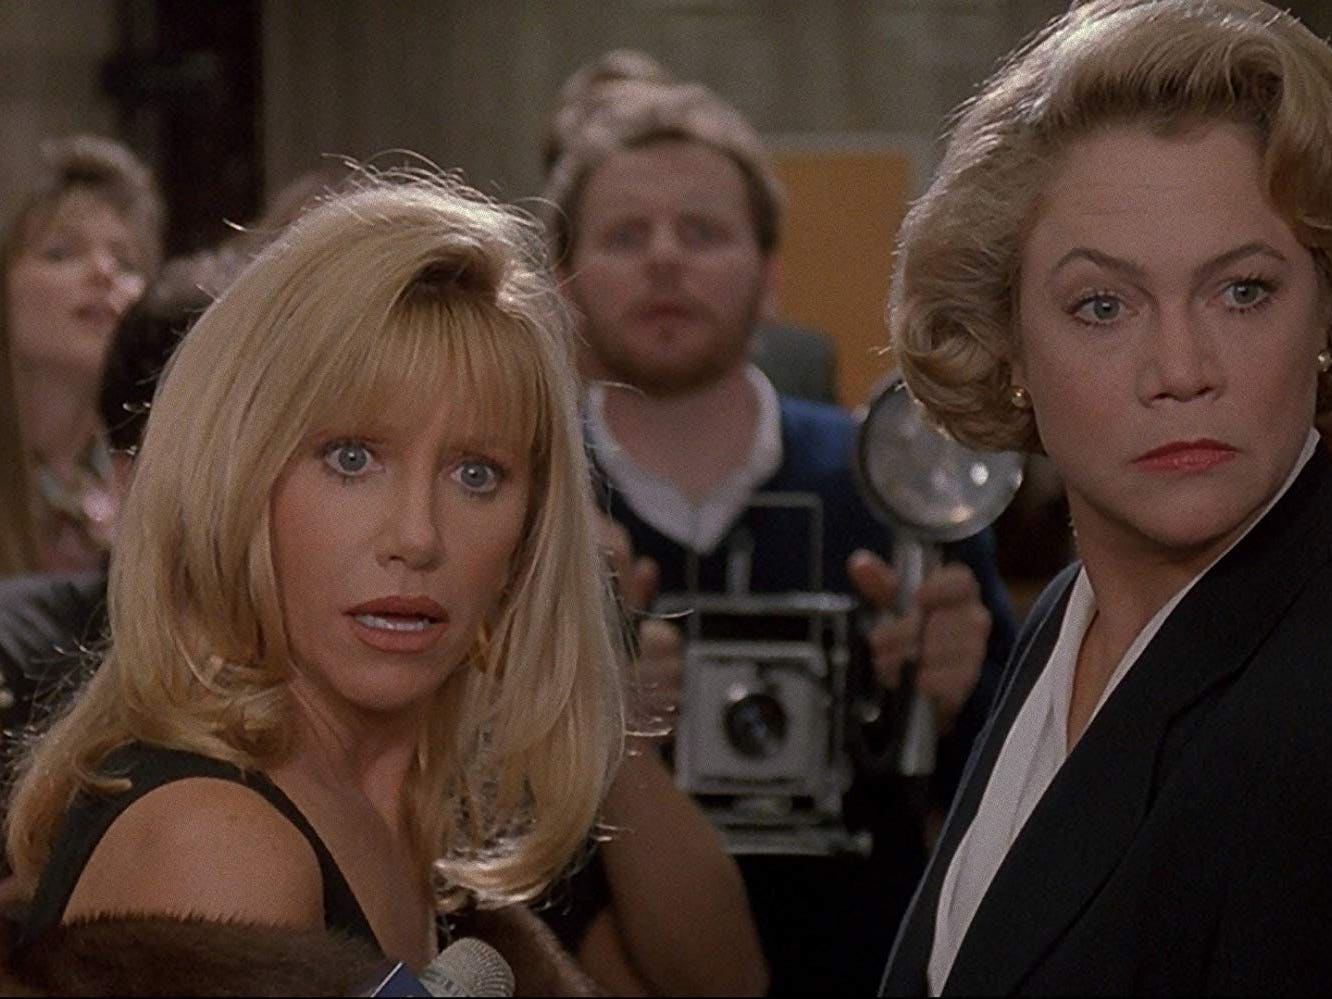 Main image for event titled SERIAL MOM